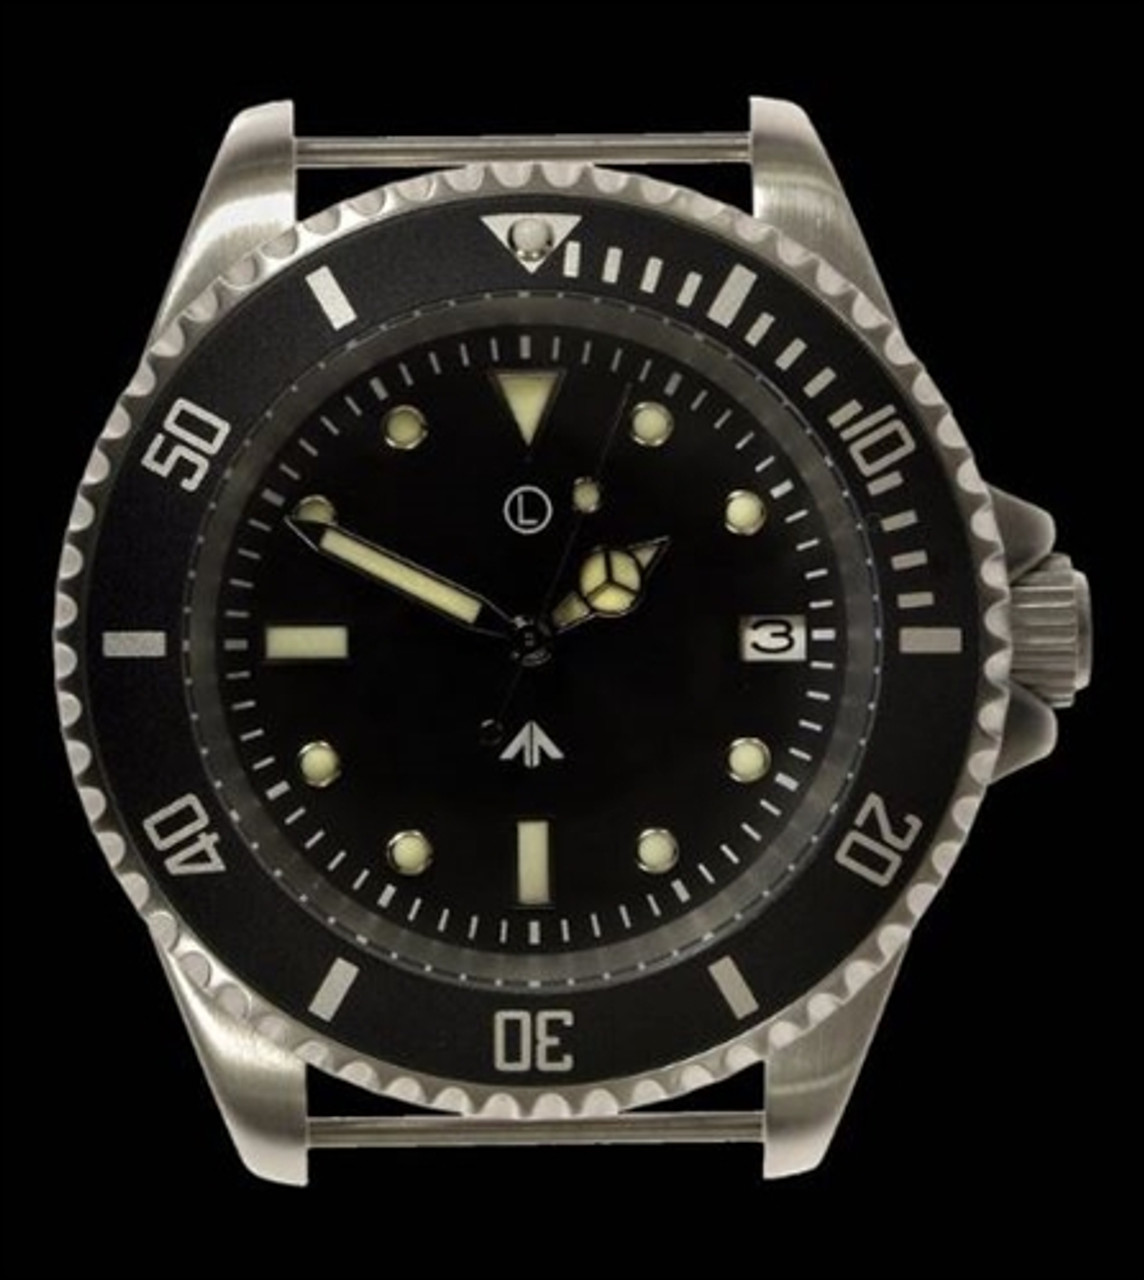 MWC 300m Stainless Steel Quartz Military Divers Watch from Hessen Militaria